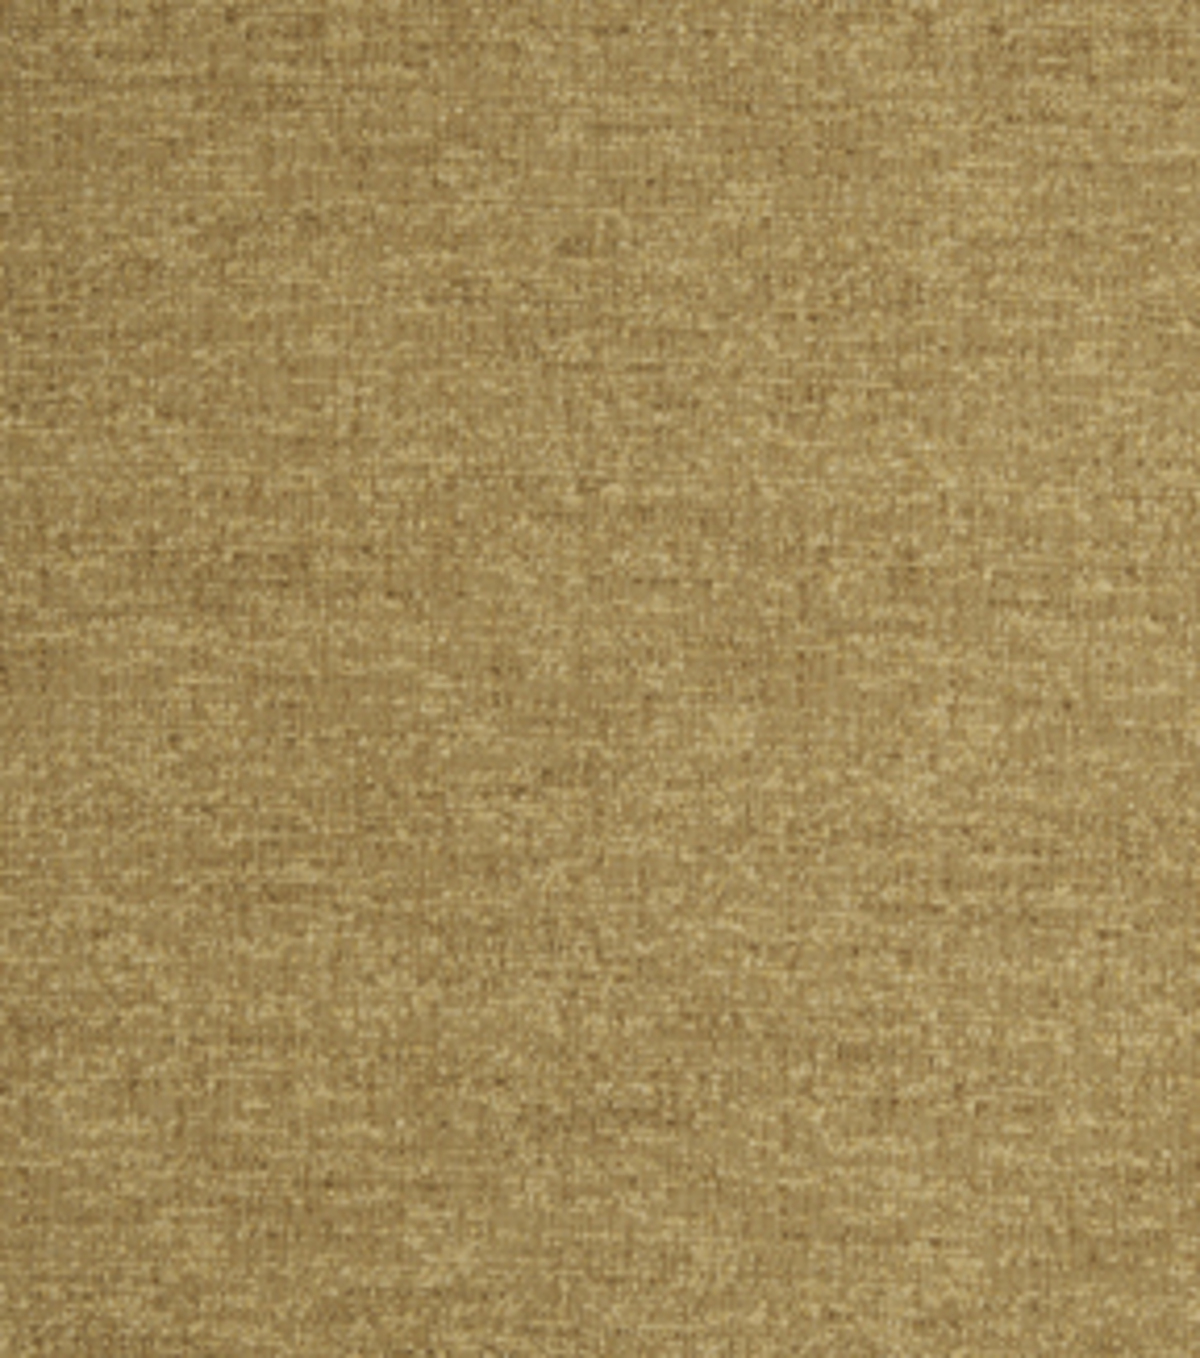 Home Decor 8\u0022x8\u0022 Fabric Swatch-Signature Series Texture Wheat